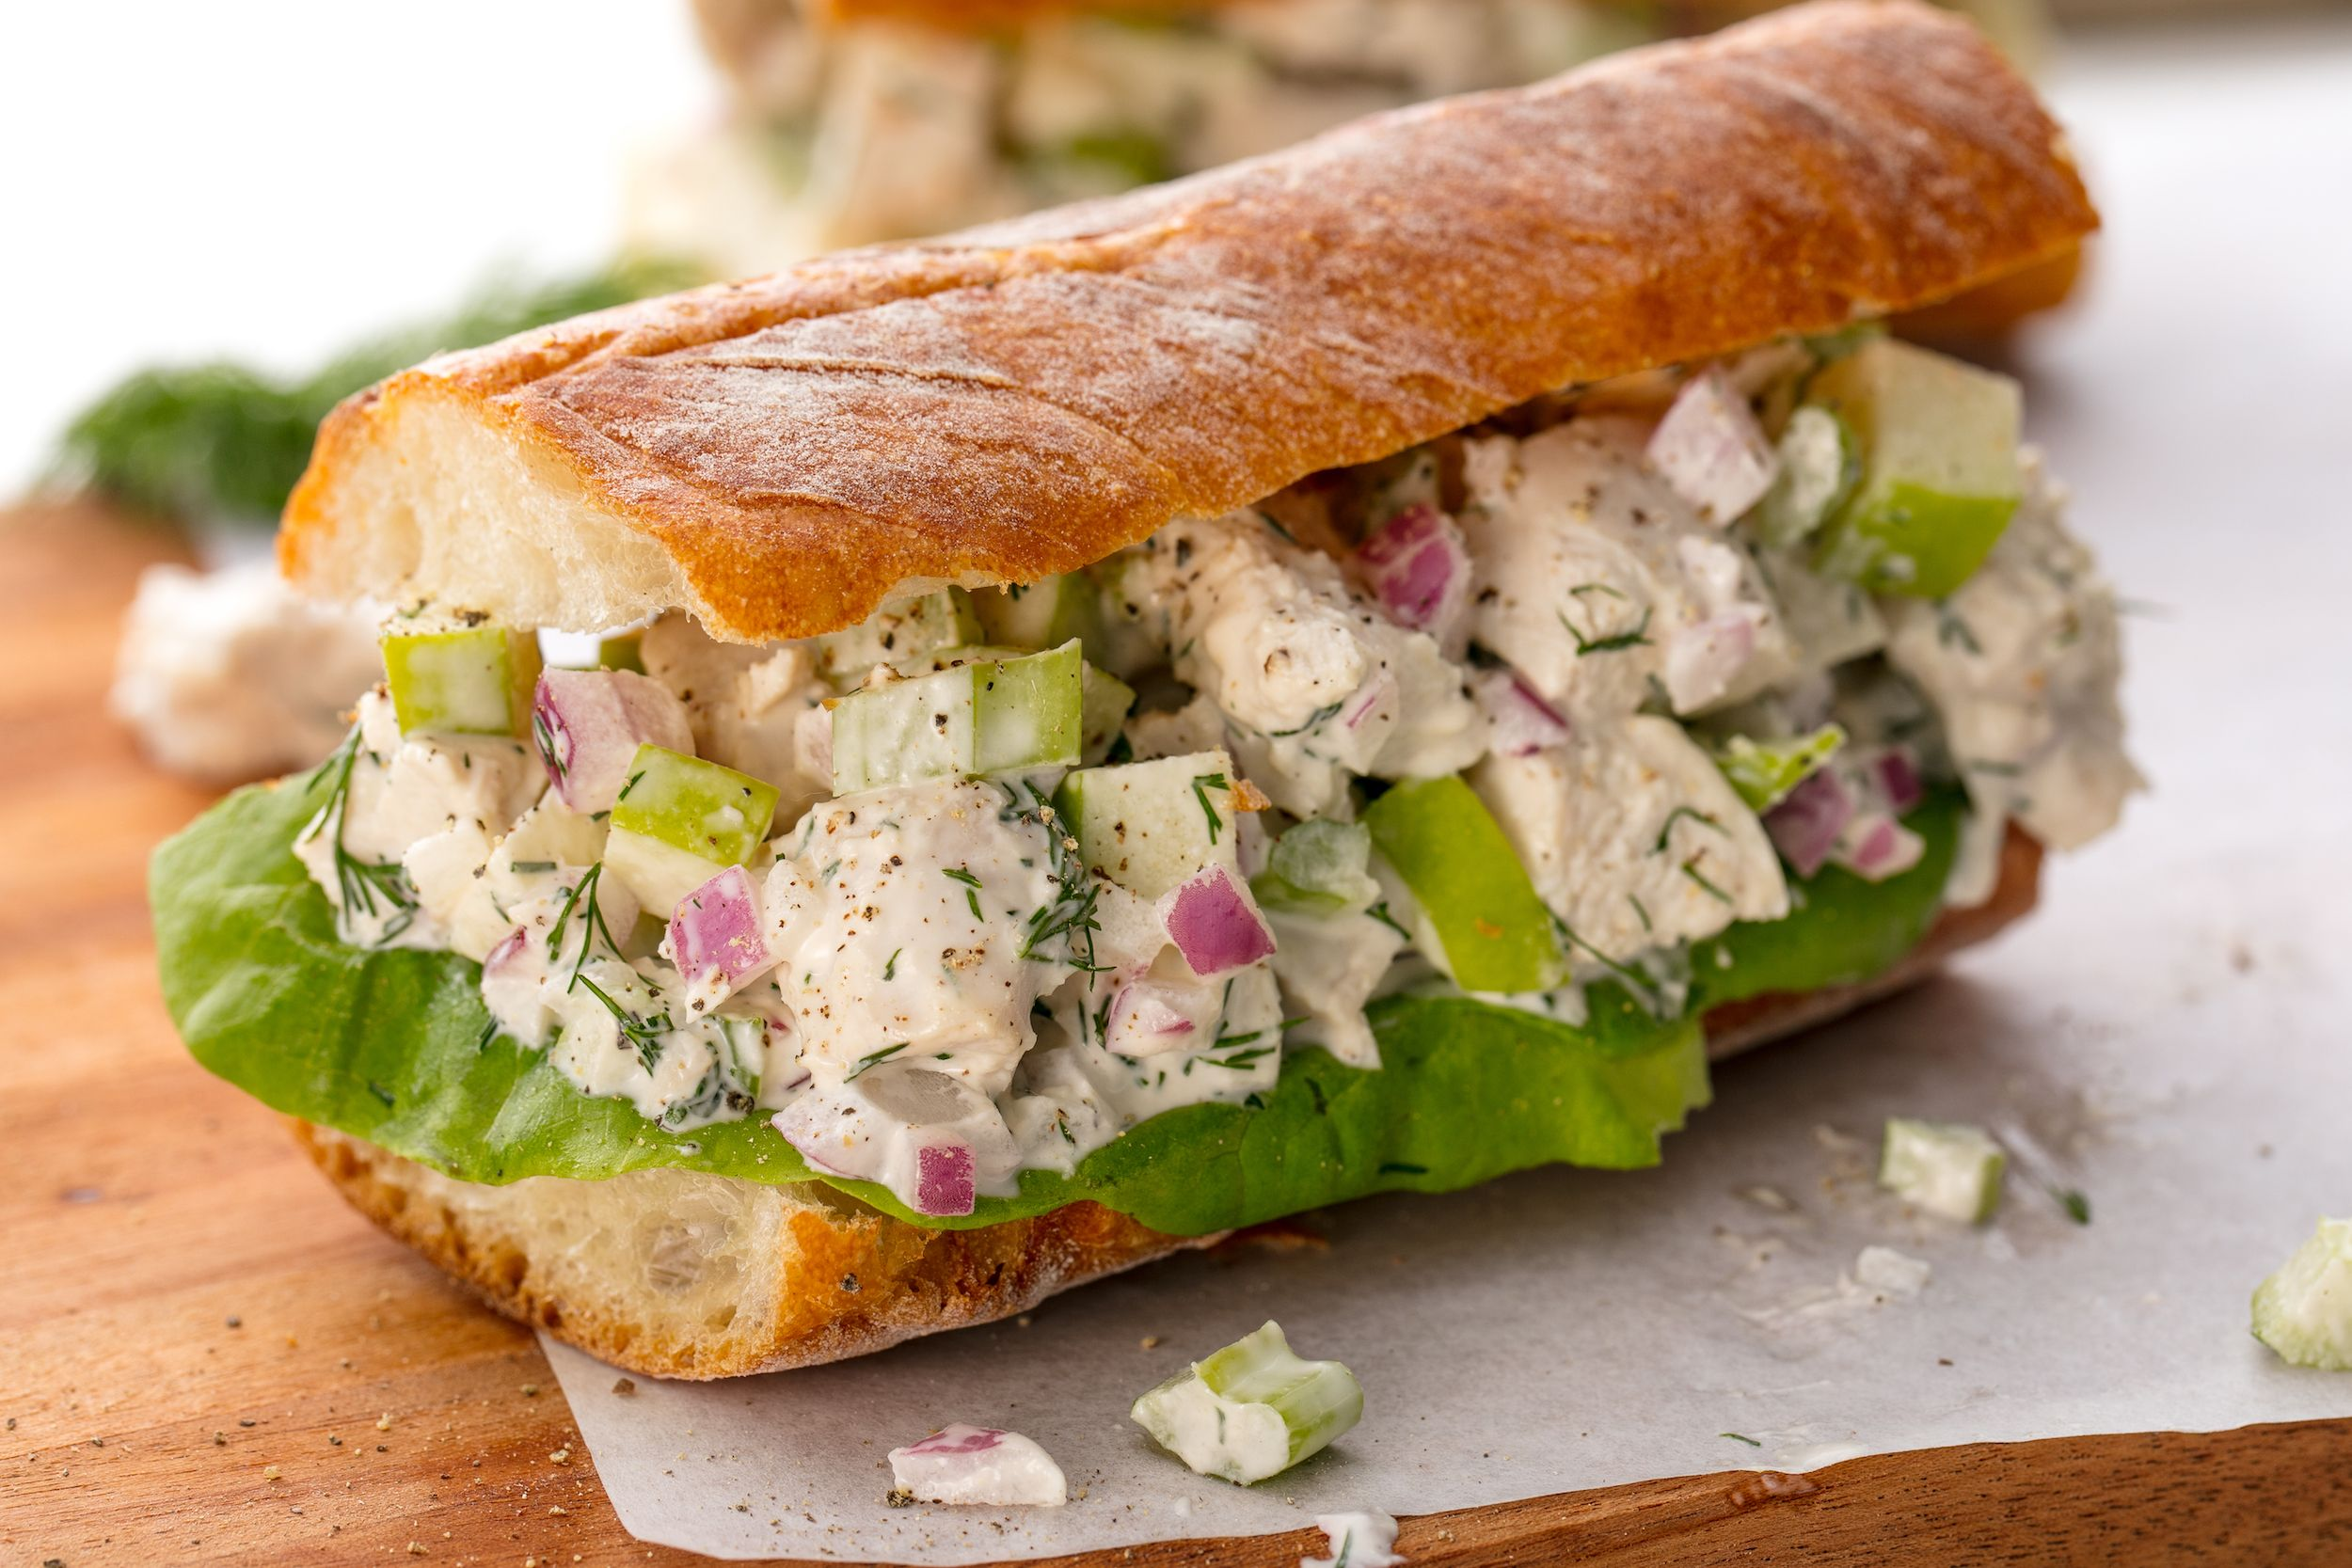 15 Easy Chicken Salad Recipes How To Make The Best Homemade Chicken Salad Delish Com